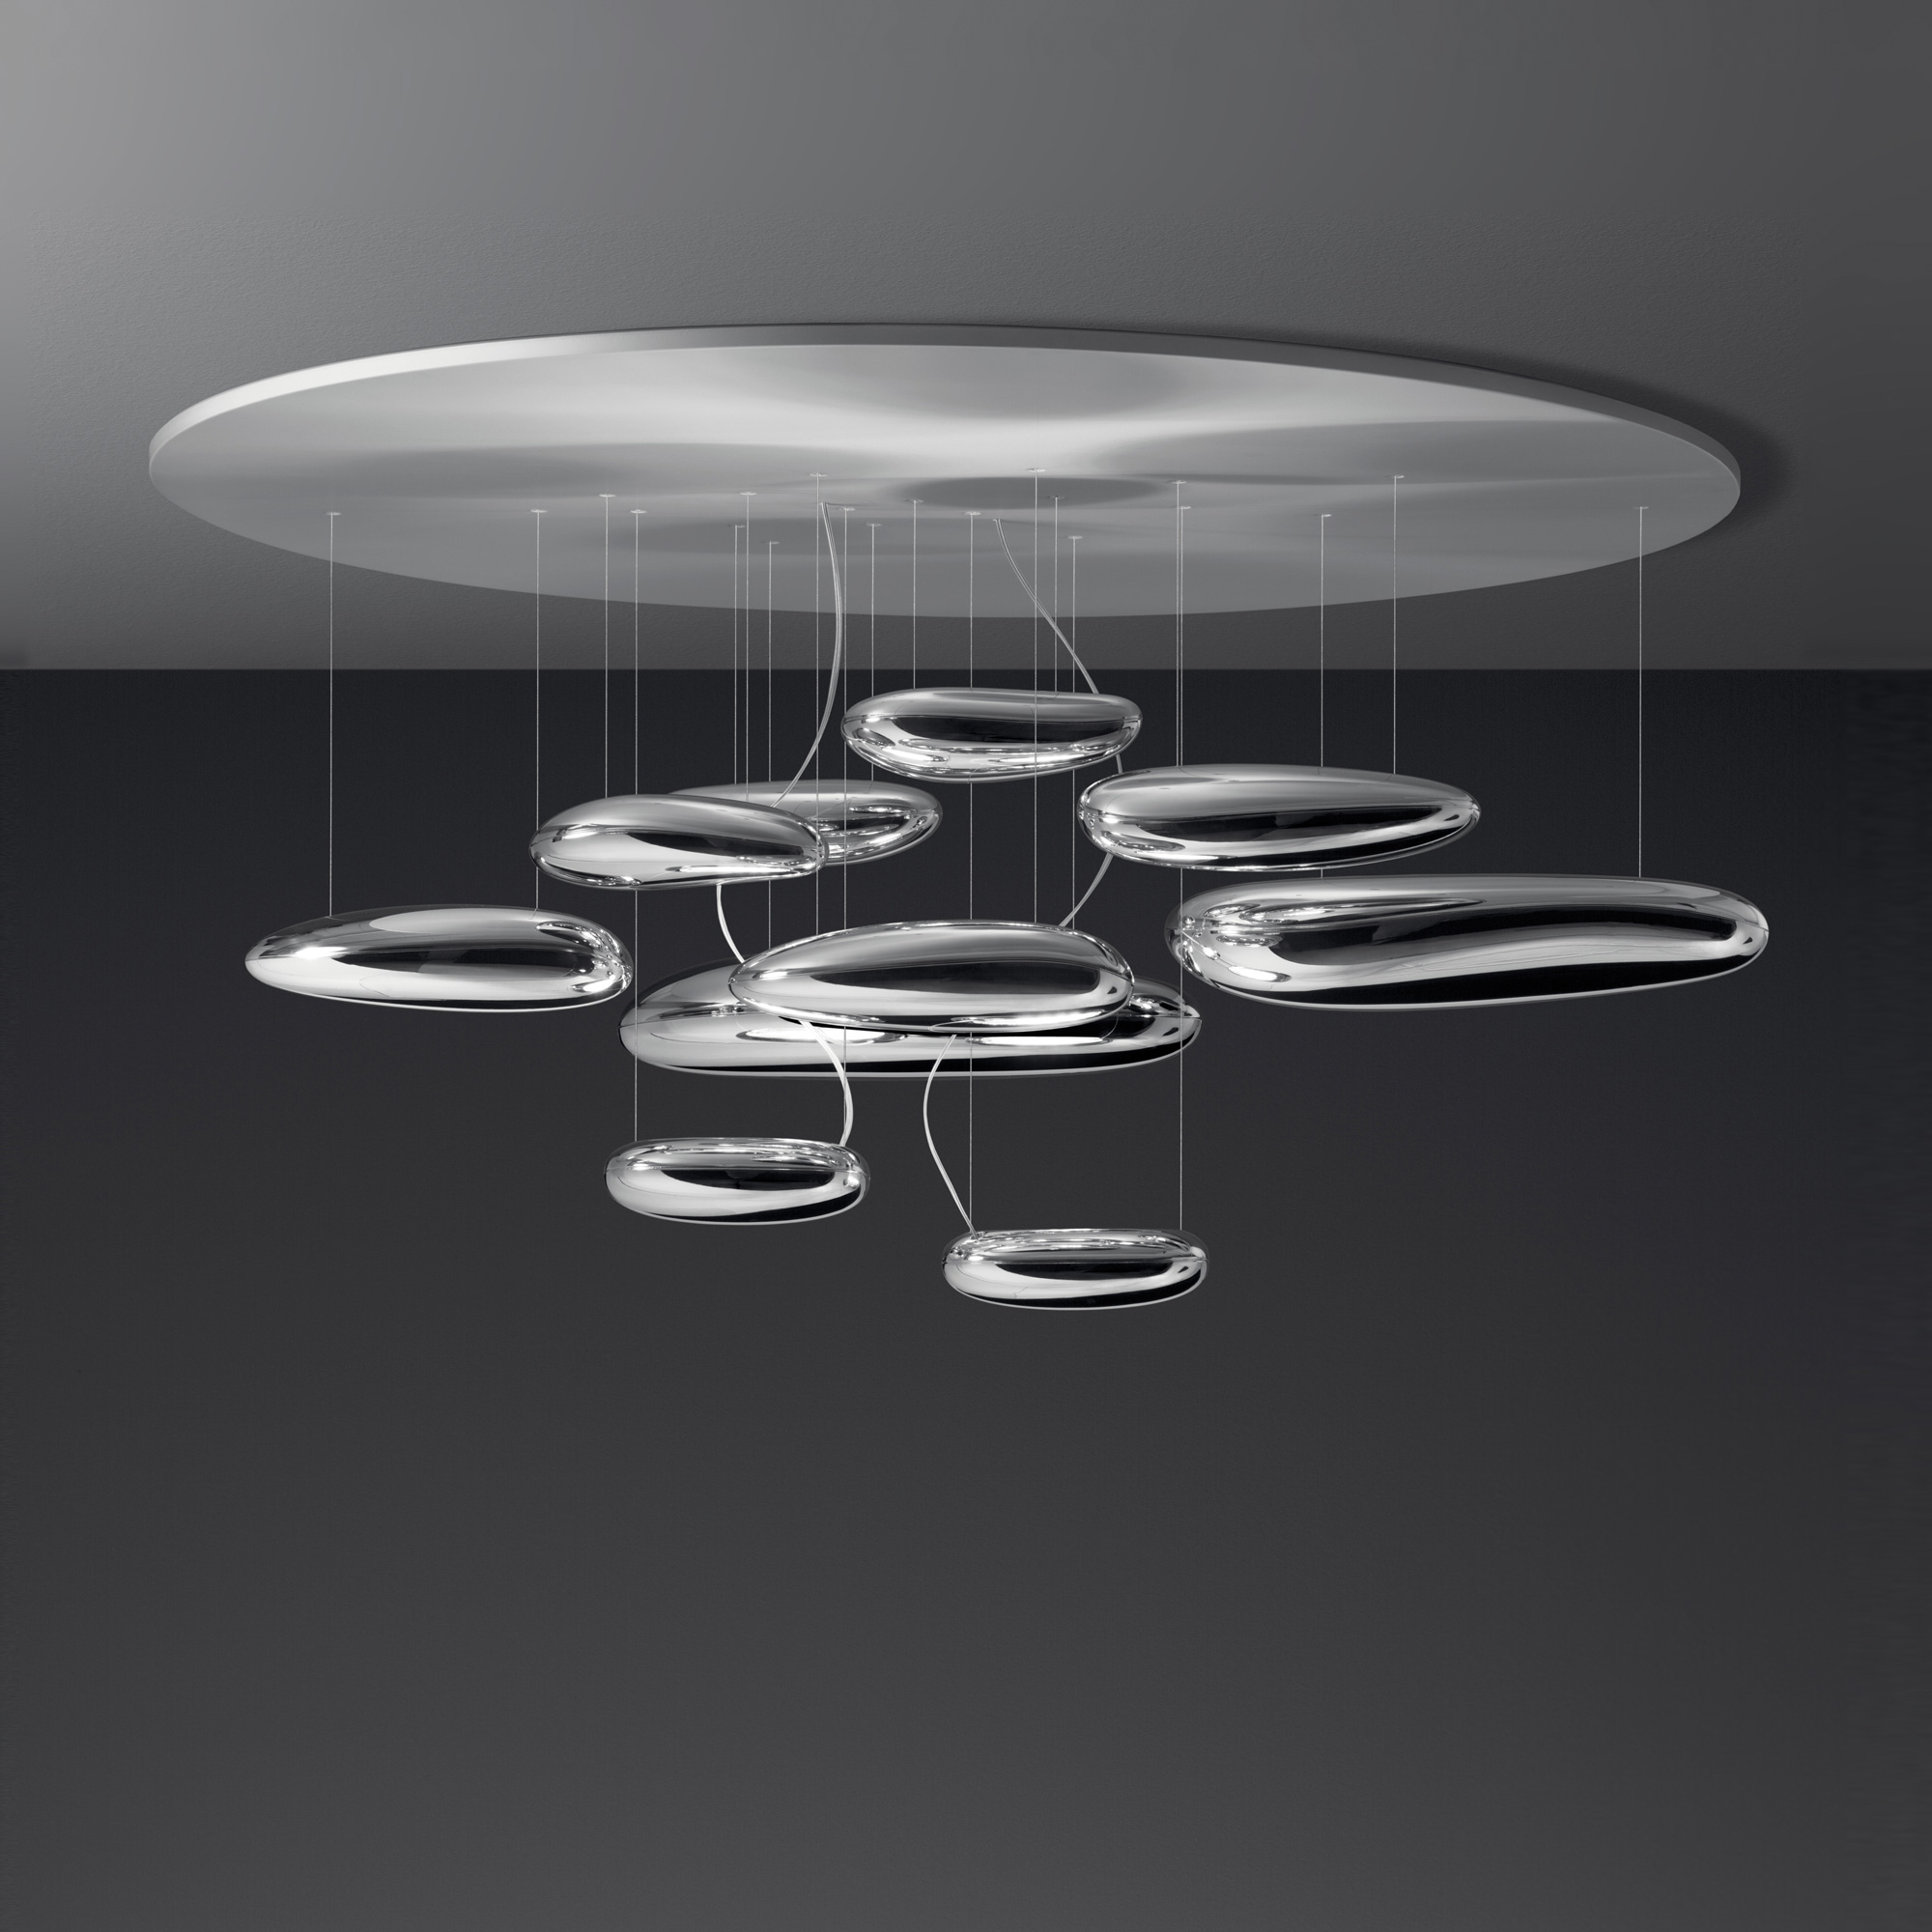 artemide mercury soffitto inox deckenleuchte 1396110a reuter onlineshop. Black Bedroom Furniture Sets. Home Design Ideas